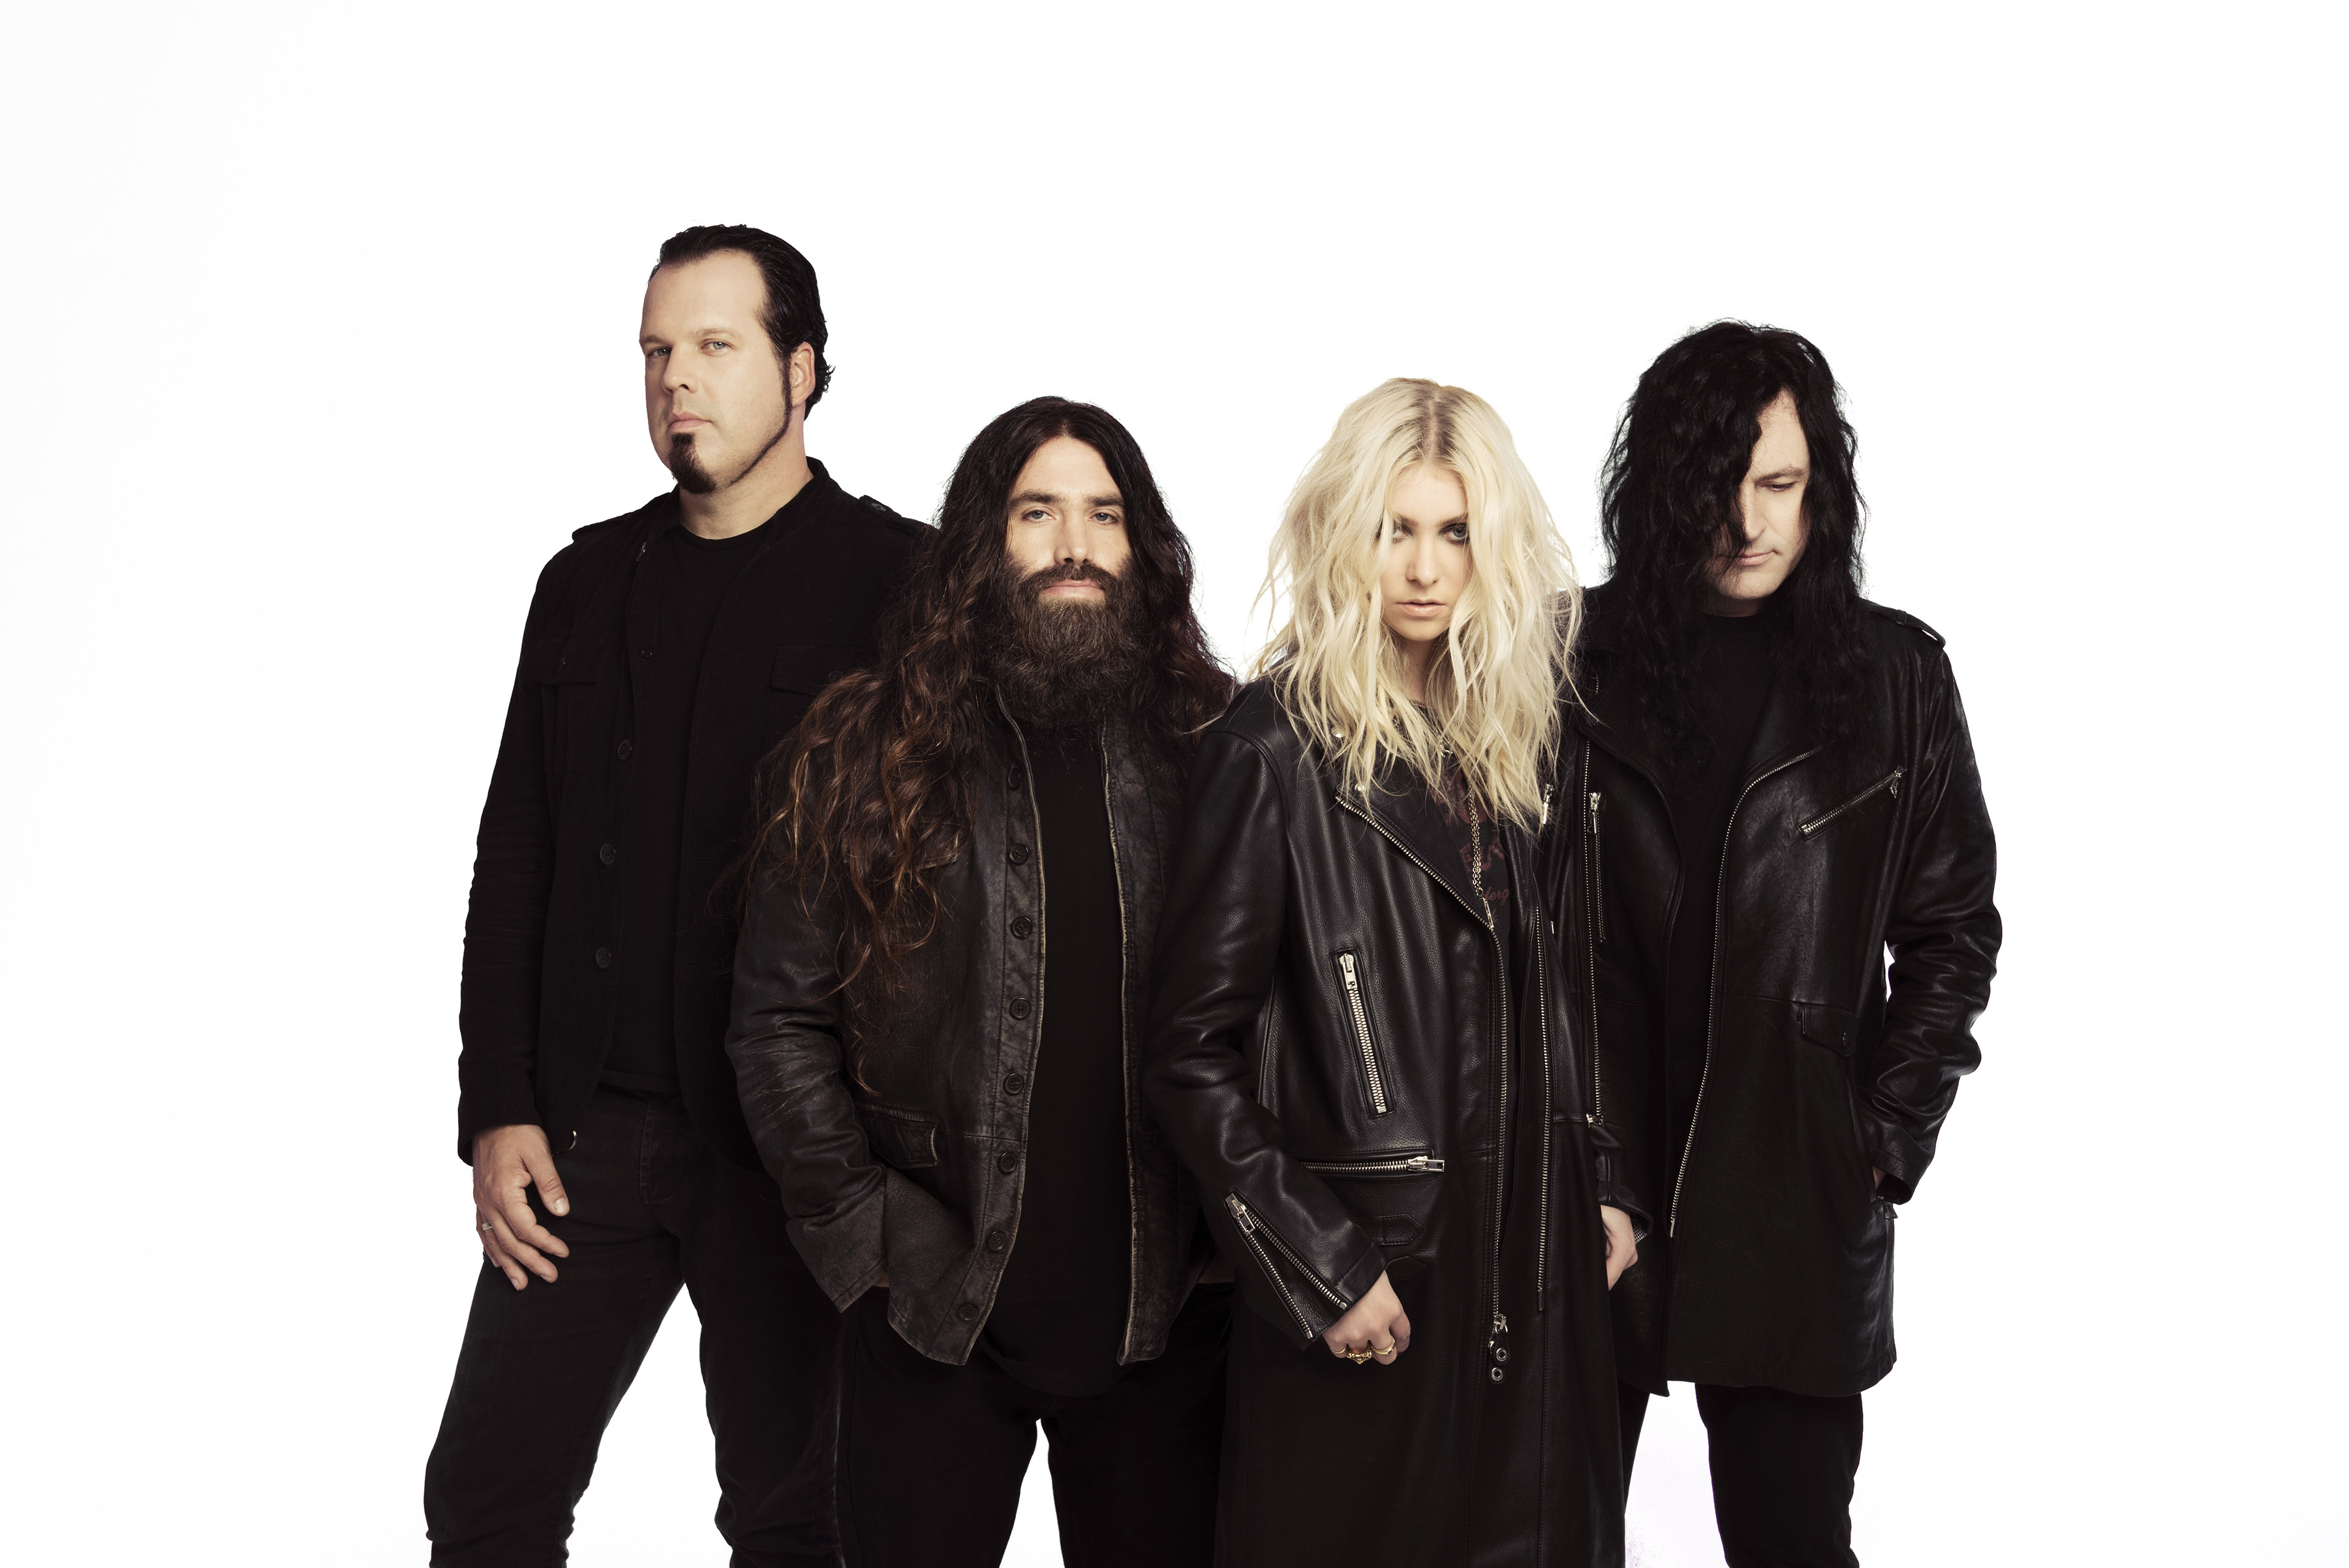 Taylor Momsen and The Pretty Reckless played Rapids Theatre in Niagara Falls on Nov. 19.